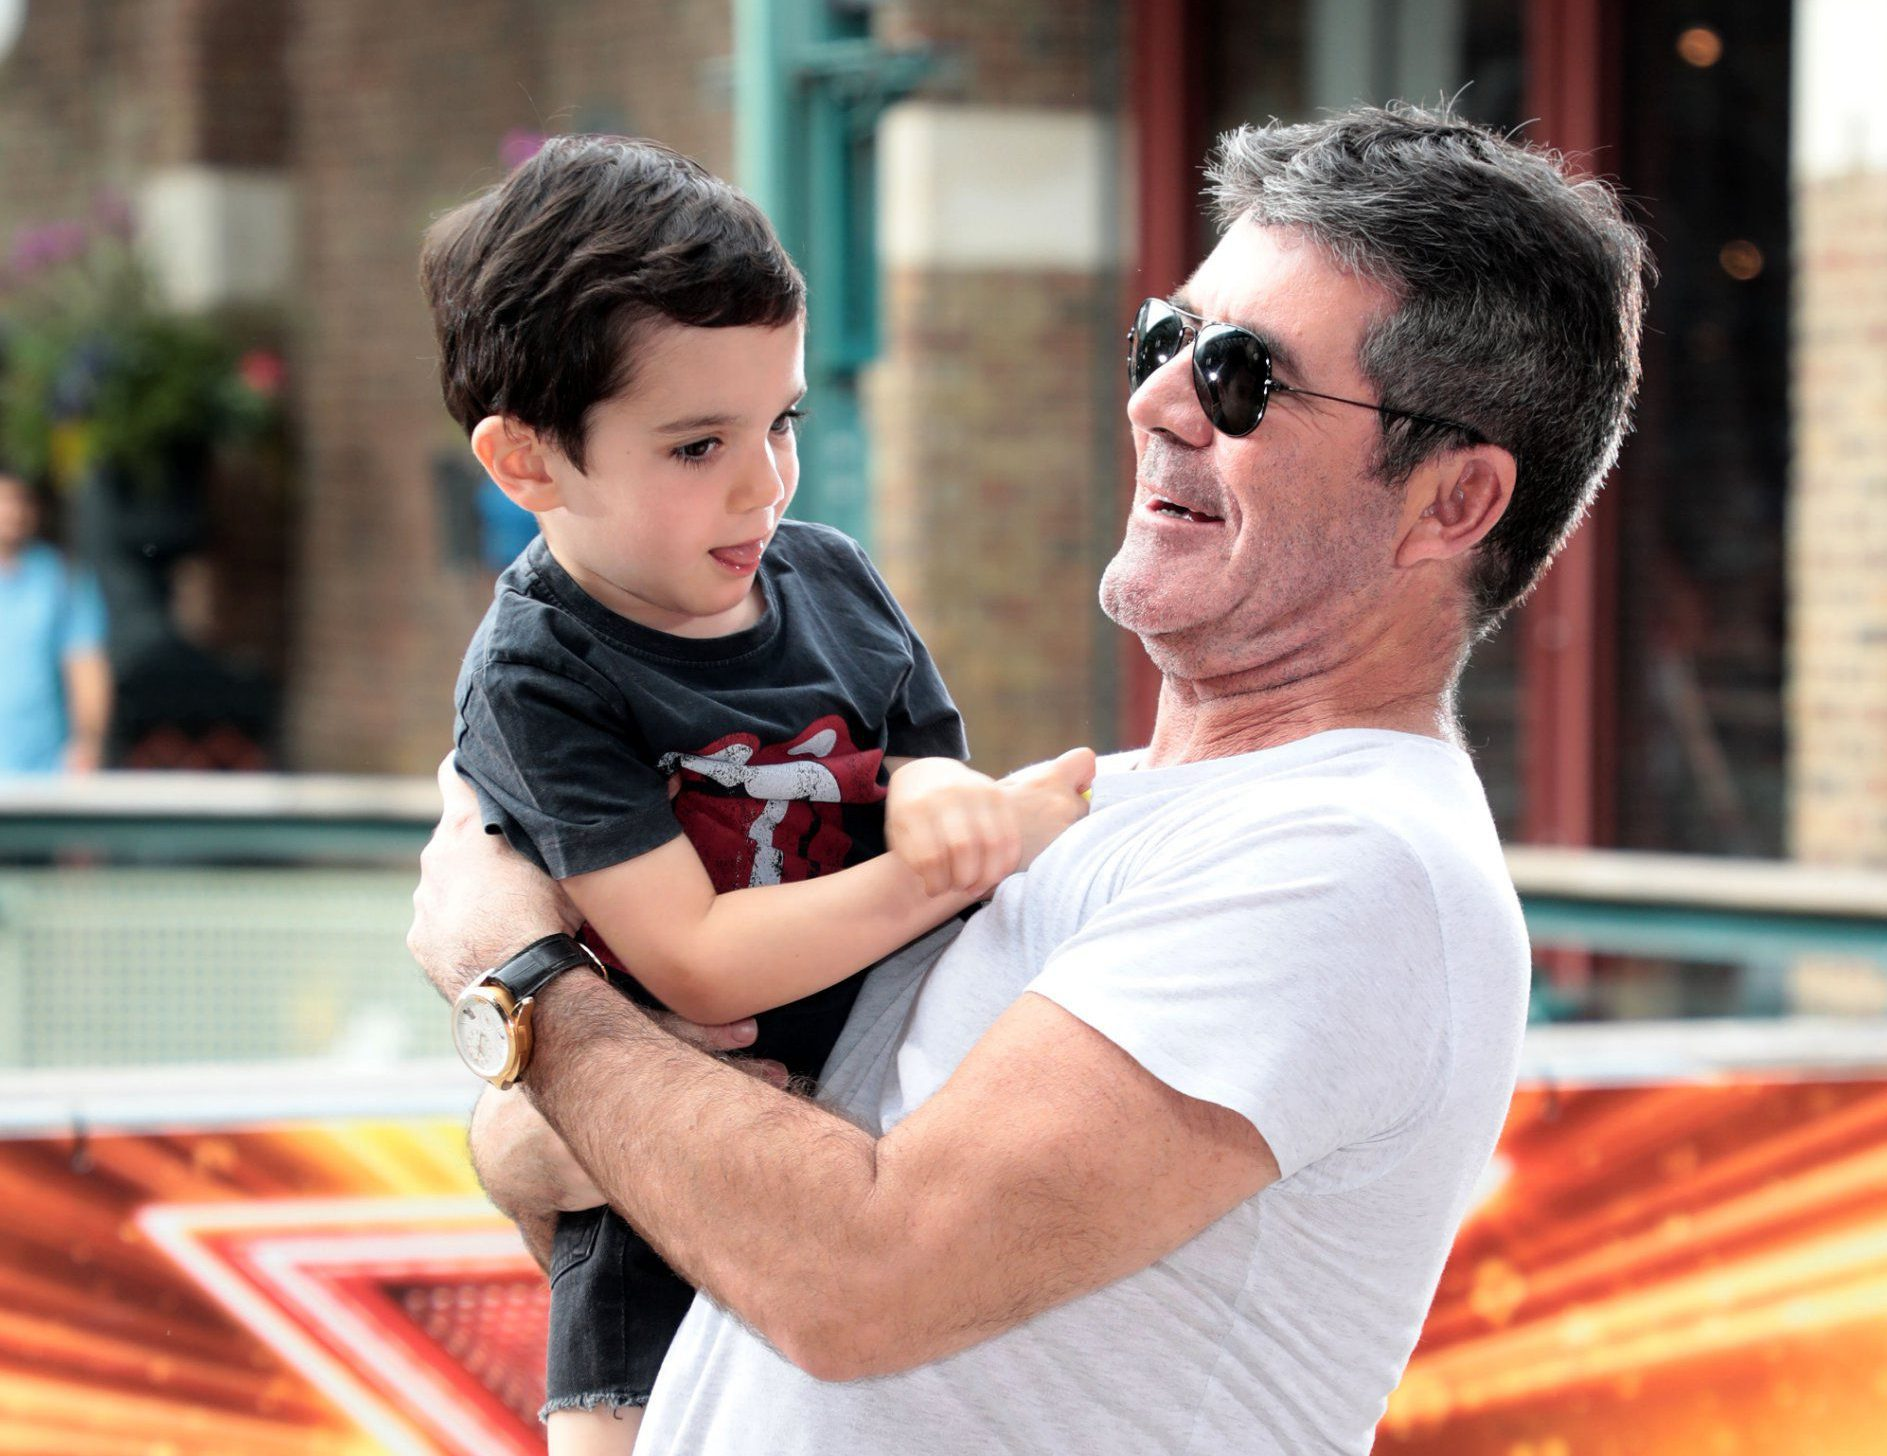 Simon Cowell's fall 'made him realise what's important in life' says Stephen Mulhern